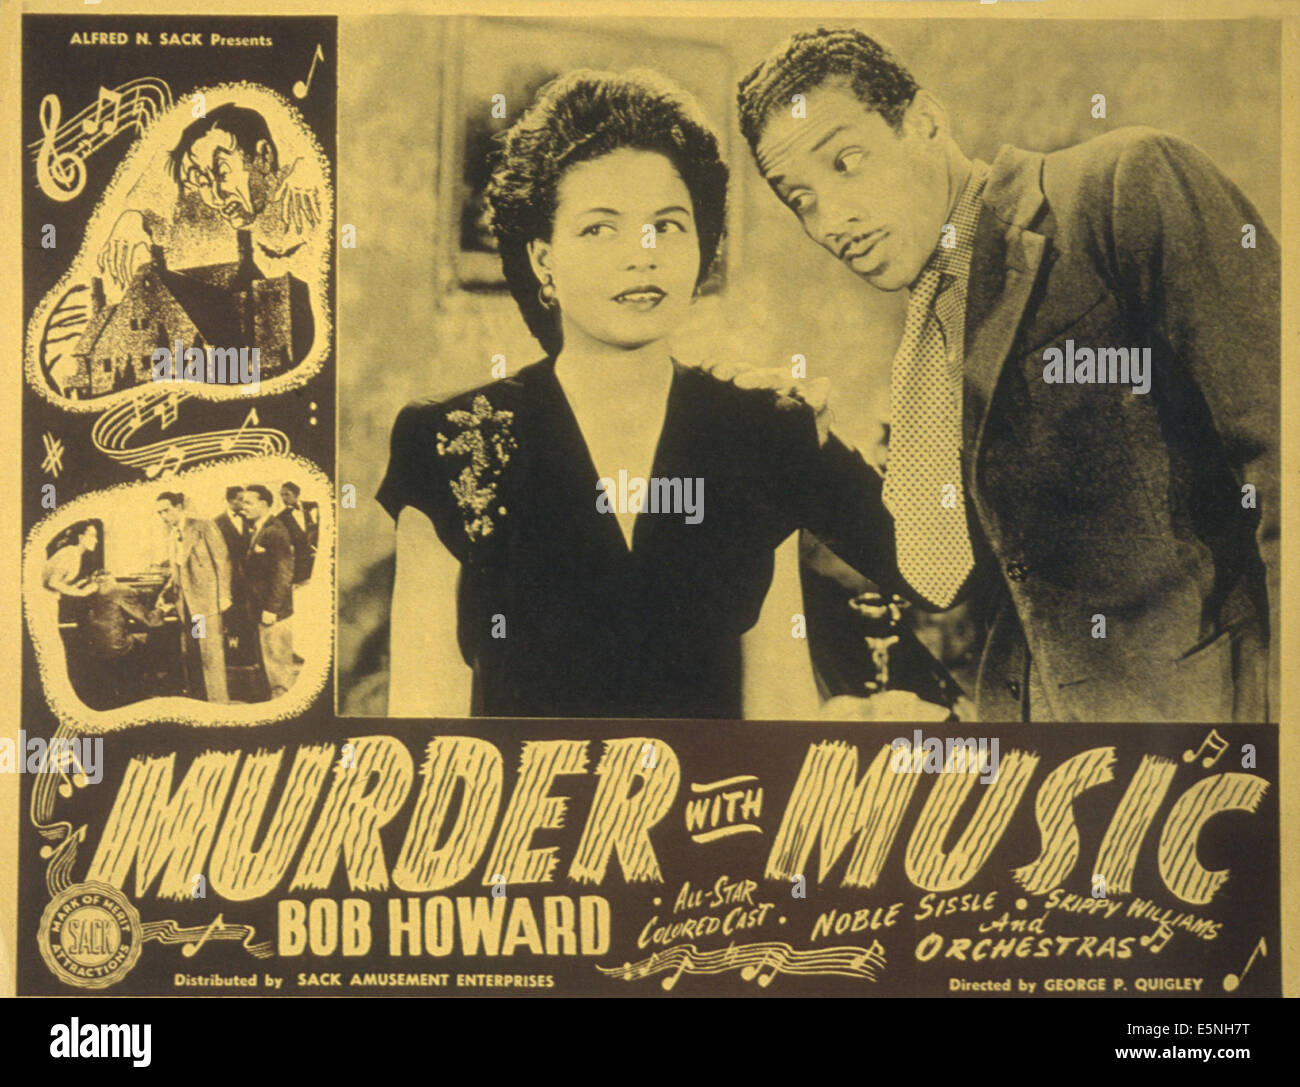 MURDER WITH MUSIC Nellie Hill Bob Howard 1941